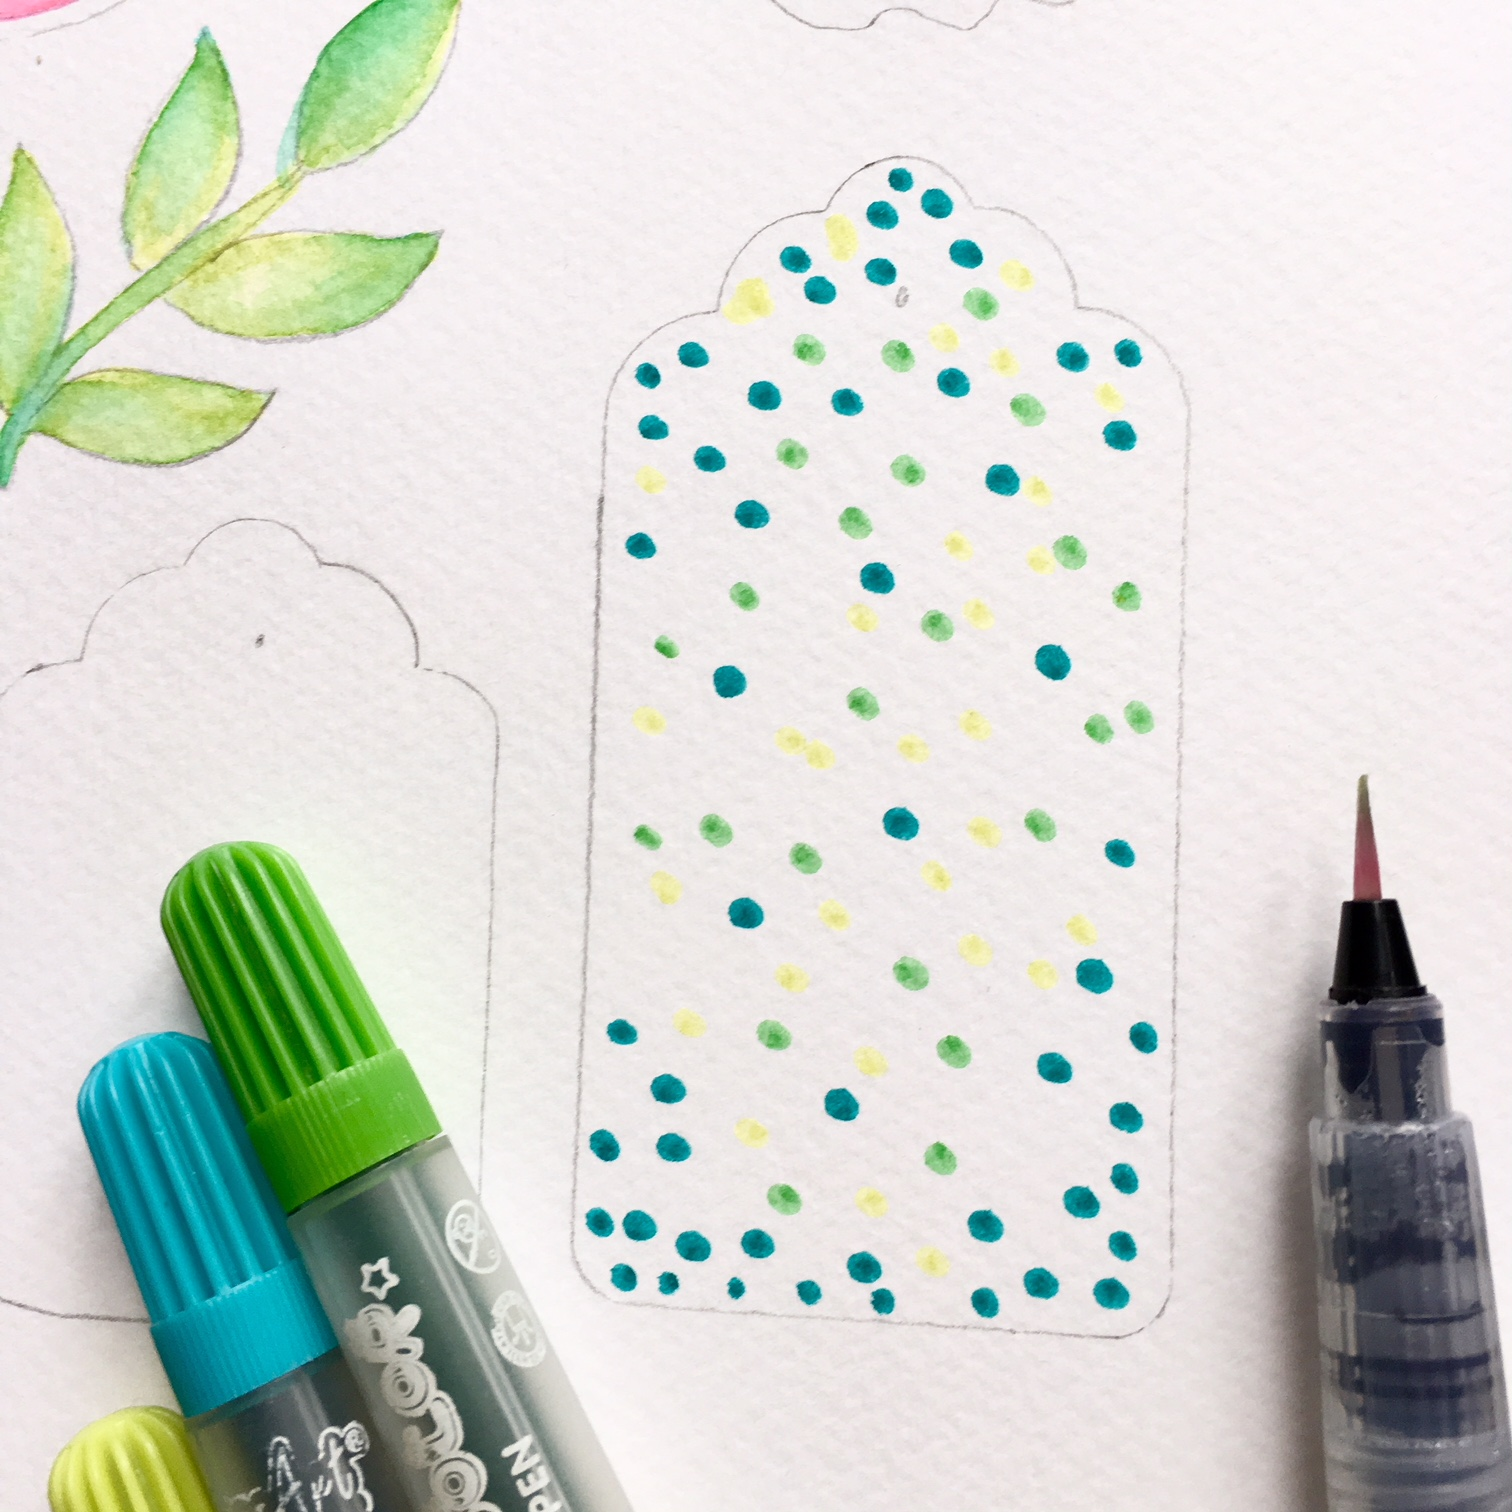 DIY scrapbook embellishments